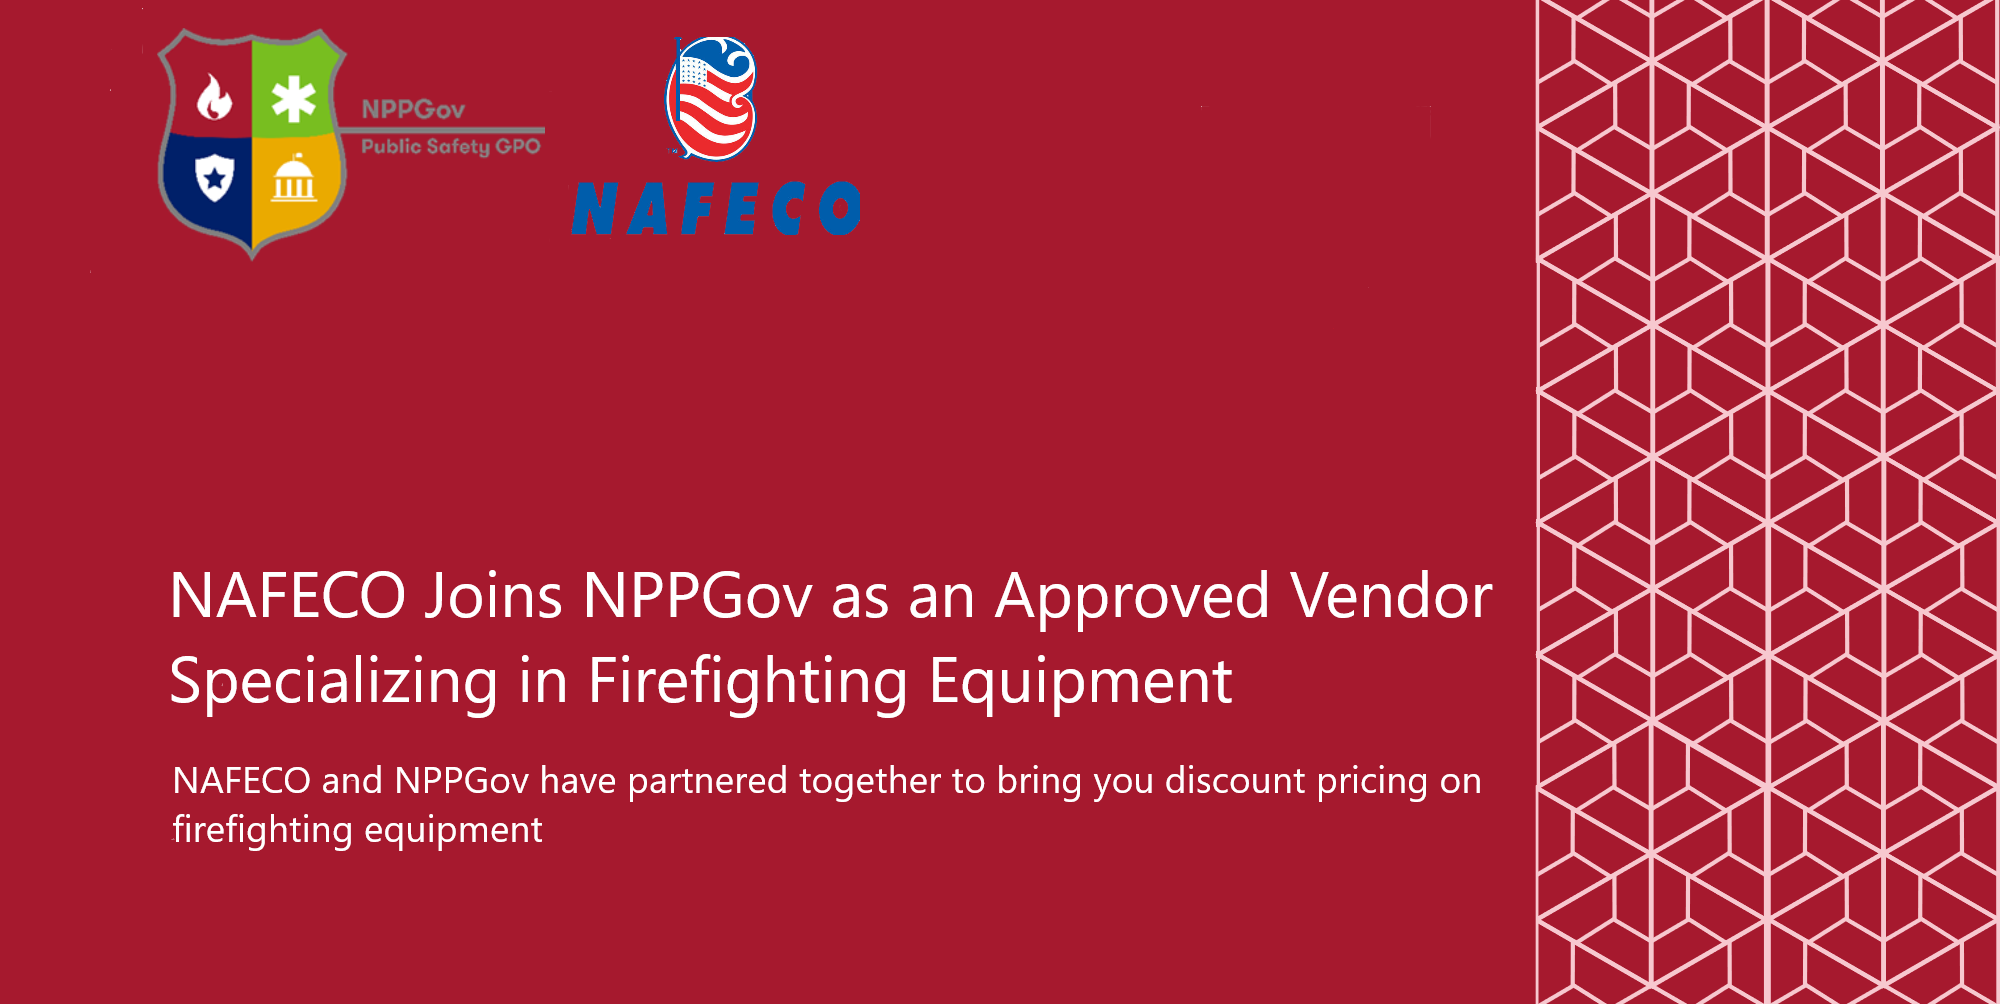 NAFECO Joins NPPGov as an Approved Vendor Specializing in Firefighter Equipment